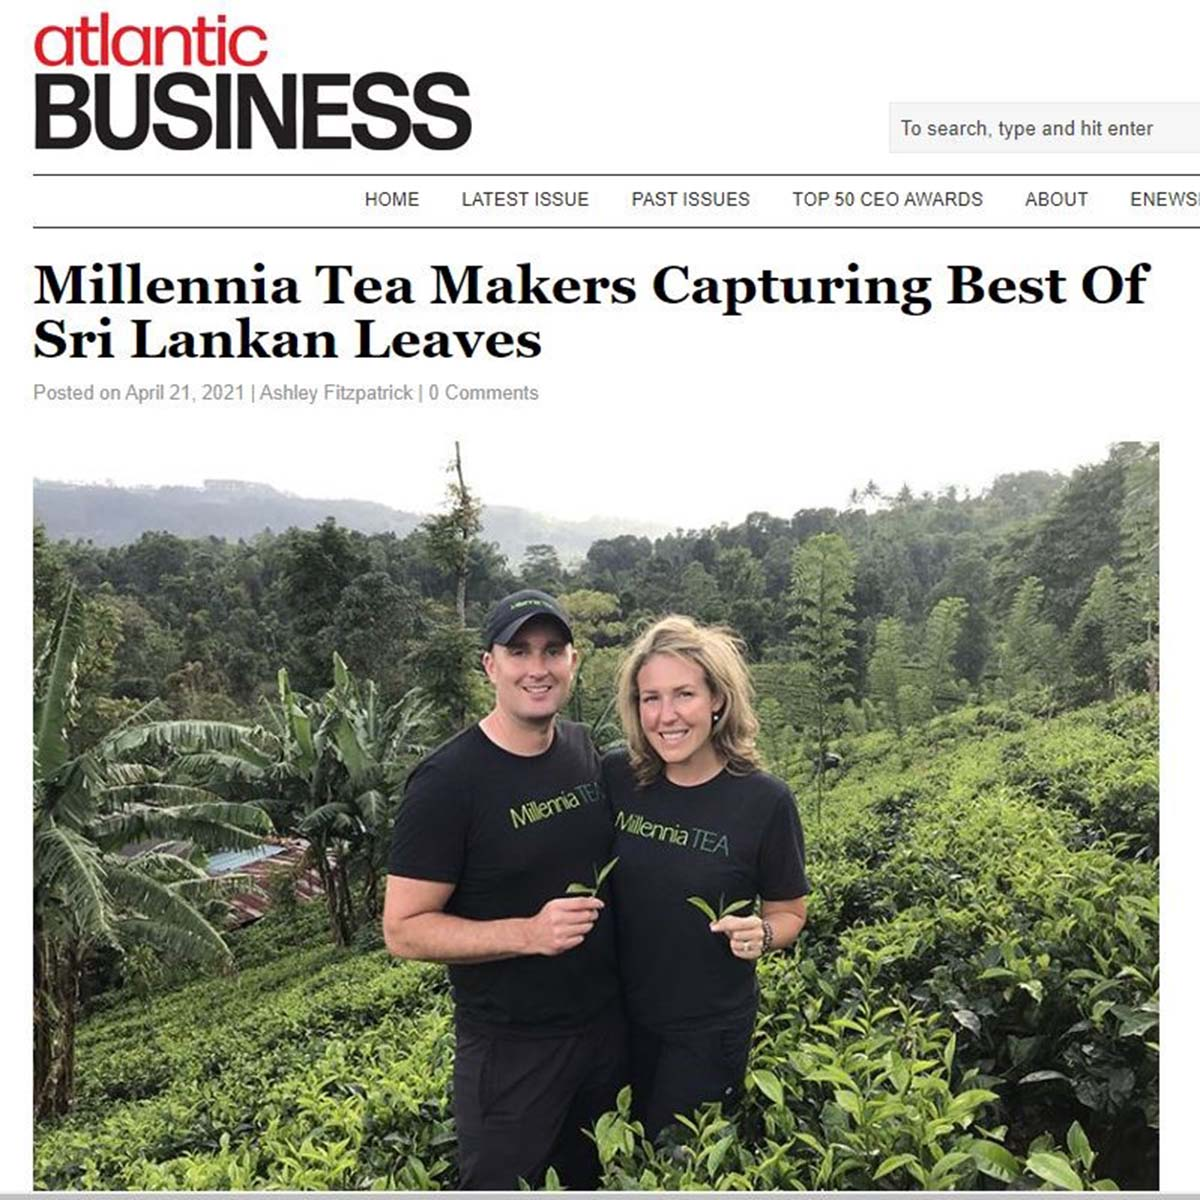 RE-POST - Atlantic Business Magazine: Millennia Tea Makers Capturing Best Of Sri Lankan Leaves